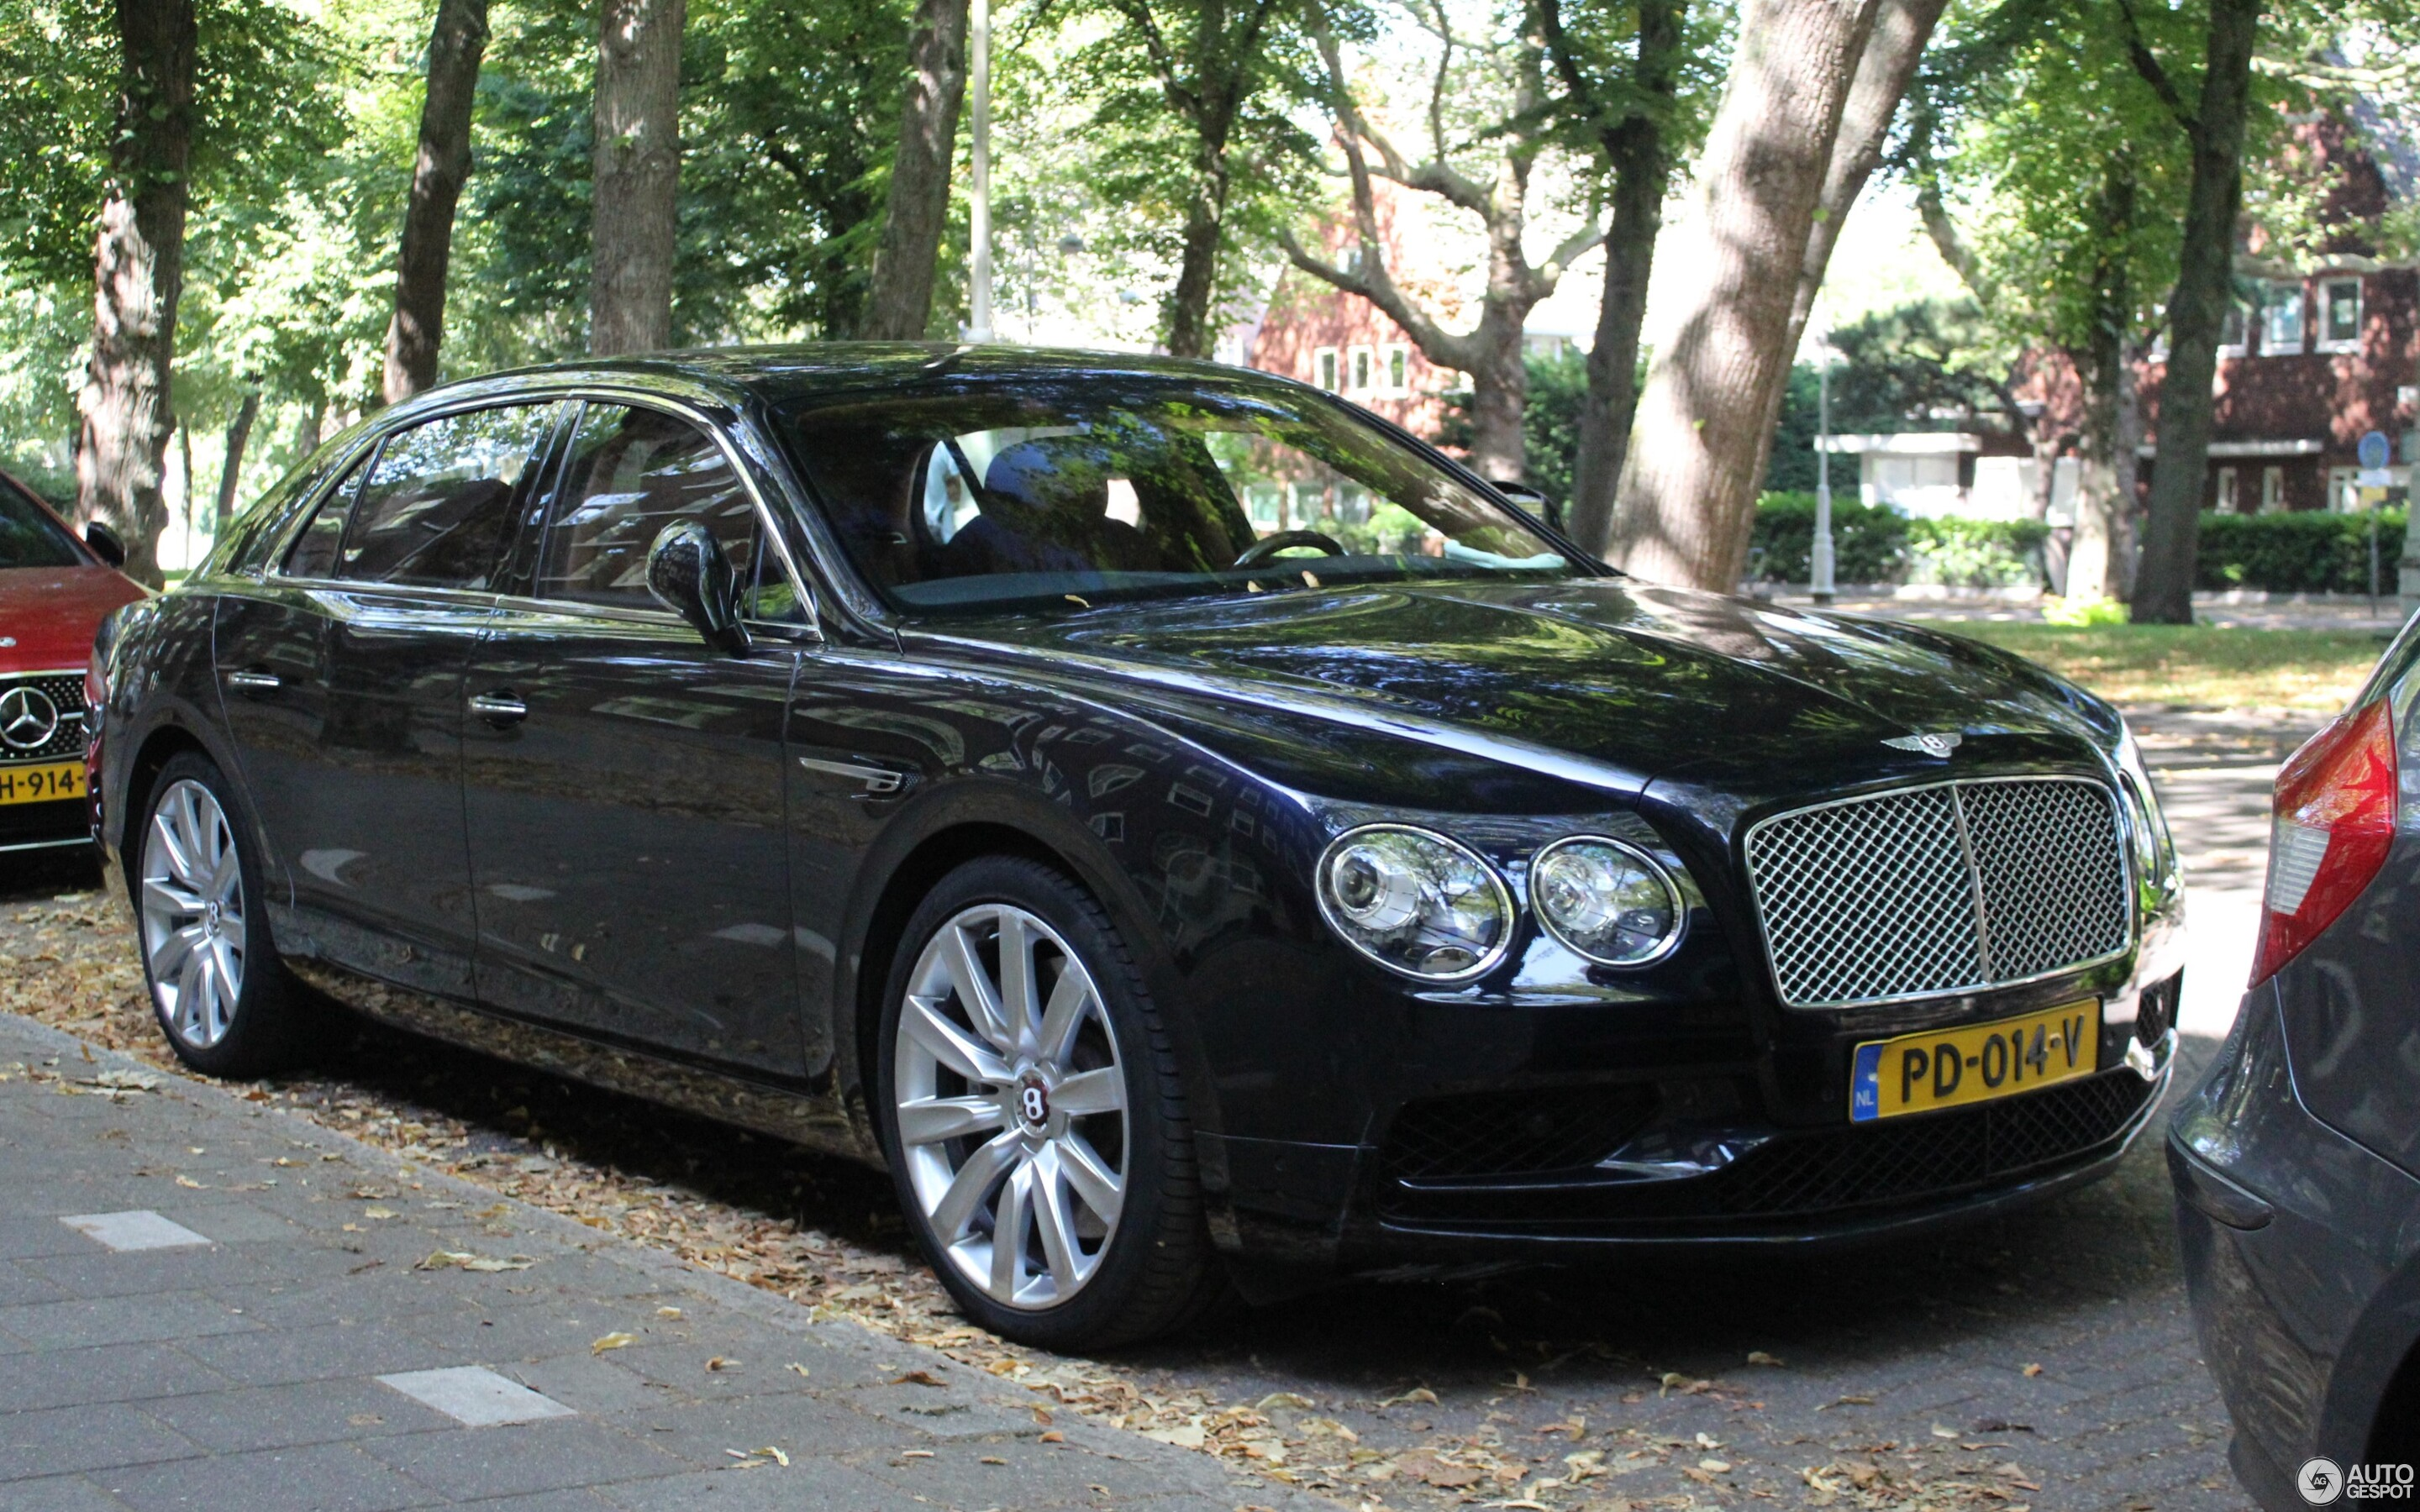 Bentley Flying Spur V8 S - 26 August 2019 - Autogespot